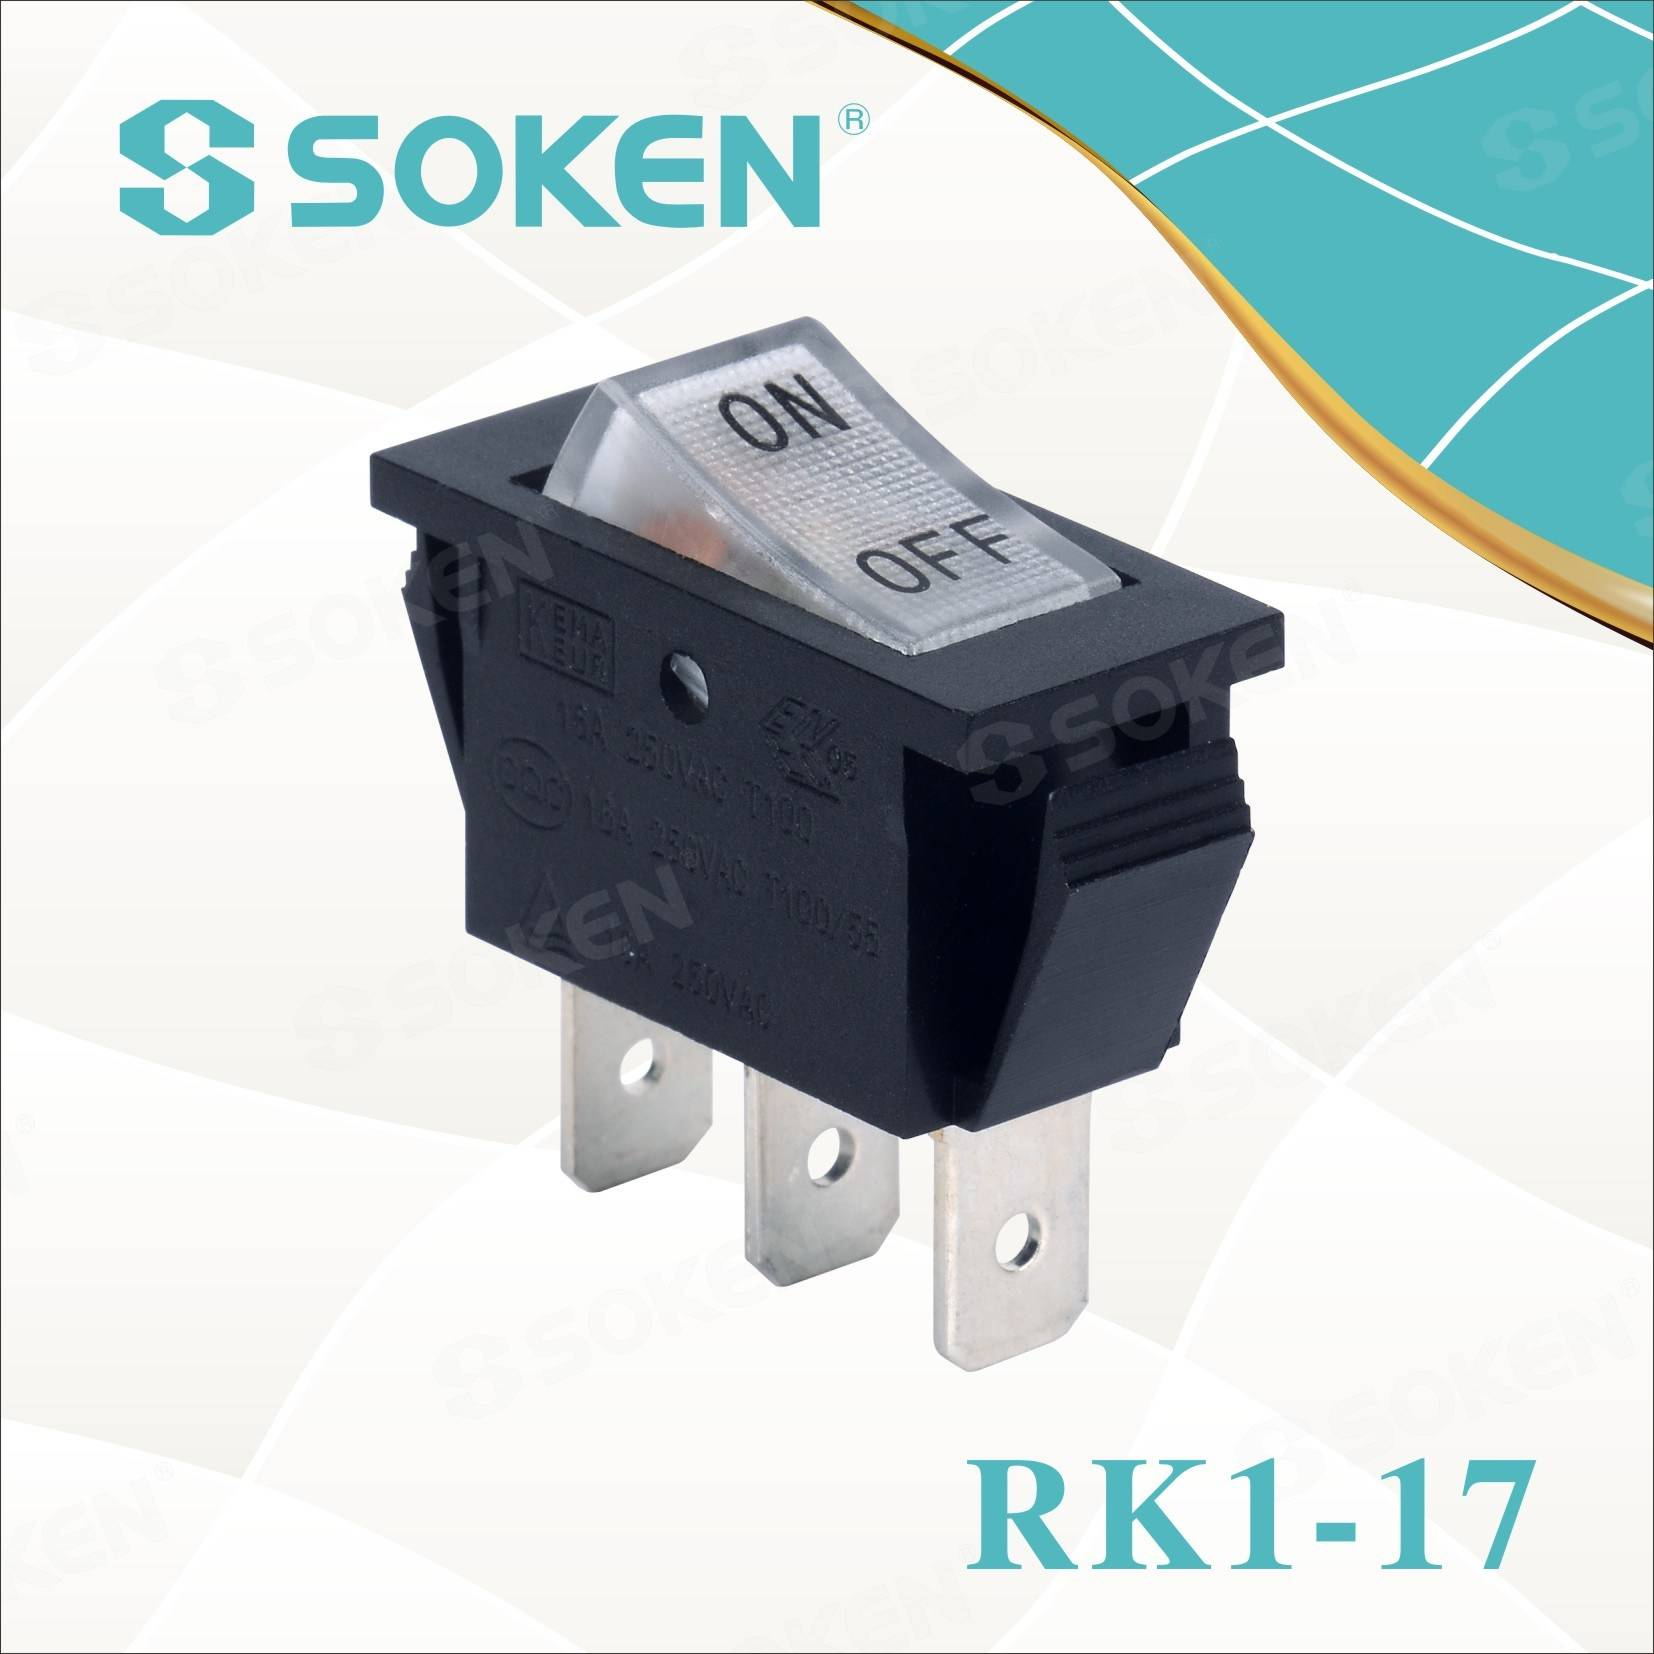 Soken Rk1-17 1X1n ku off Illuminated Rocker Shintshela